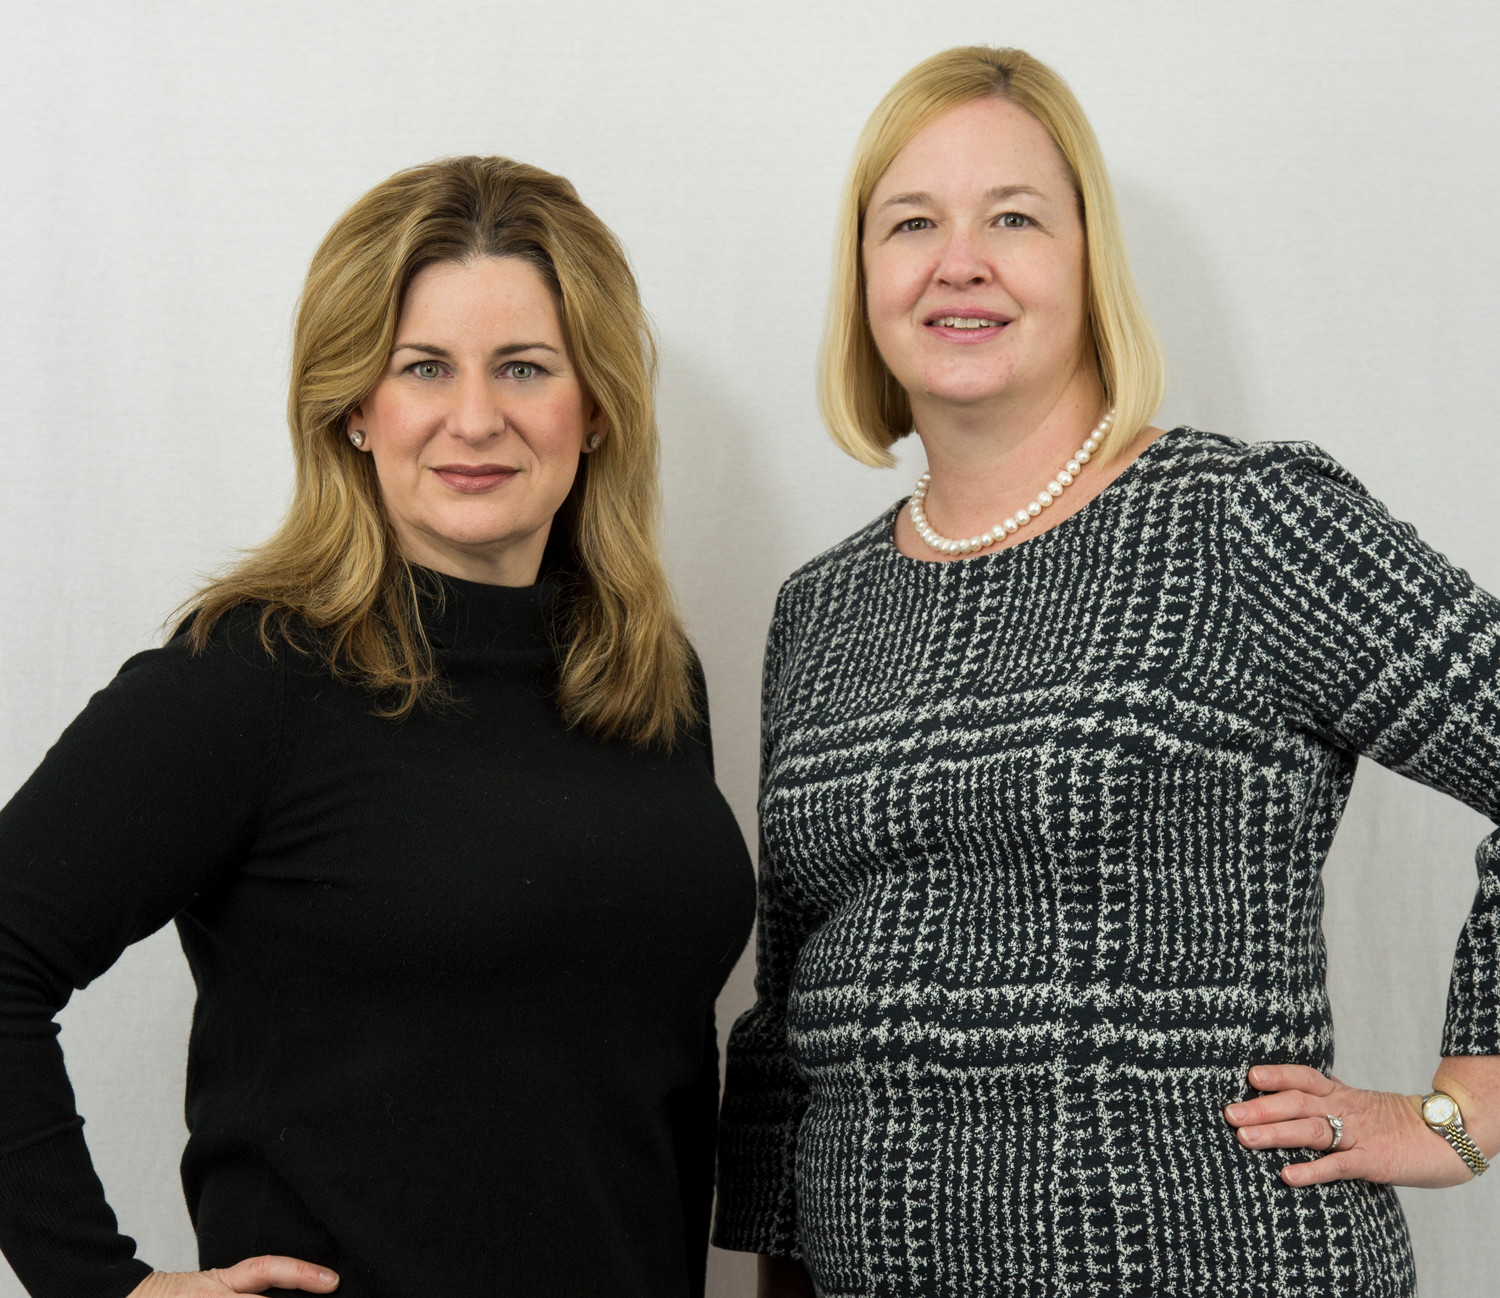 Kristen Moonan & Amy Stratton; Estate Planning & Business Attorneys at Moonan, Stratton & Waldman, LLP